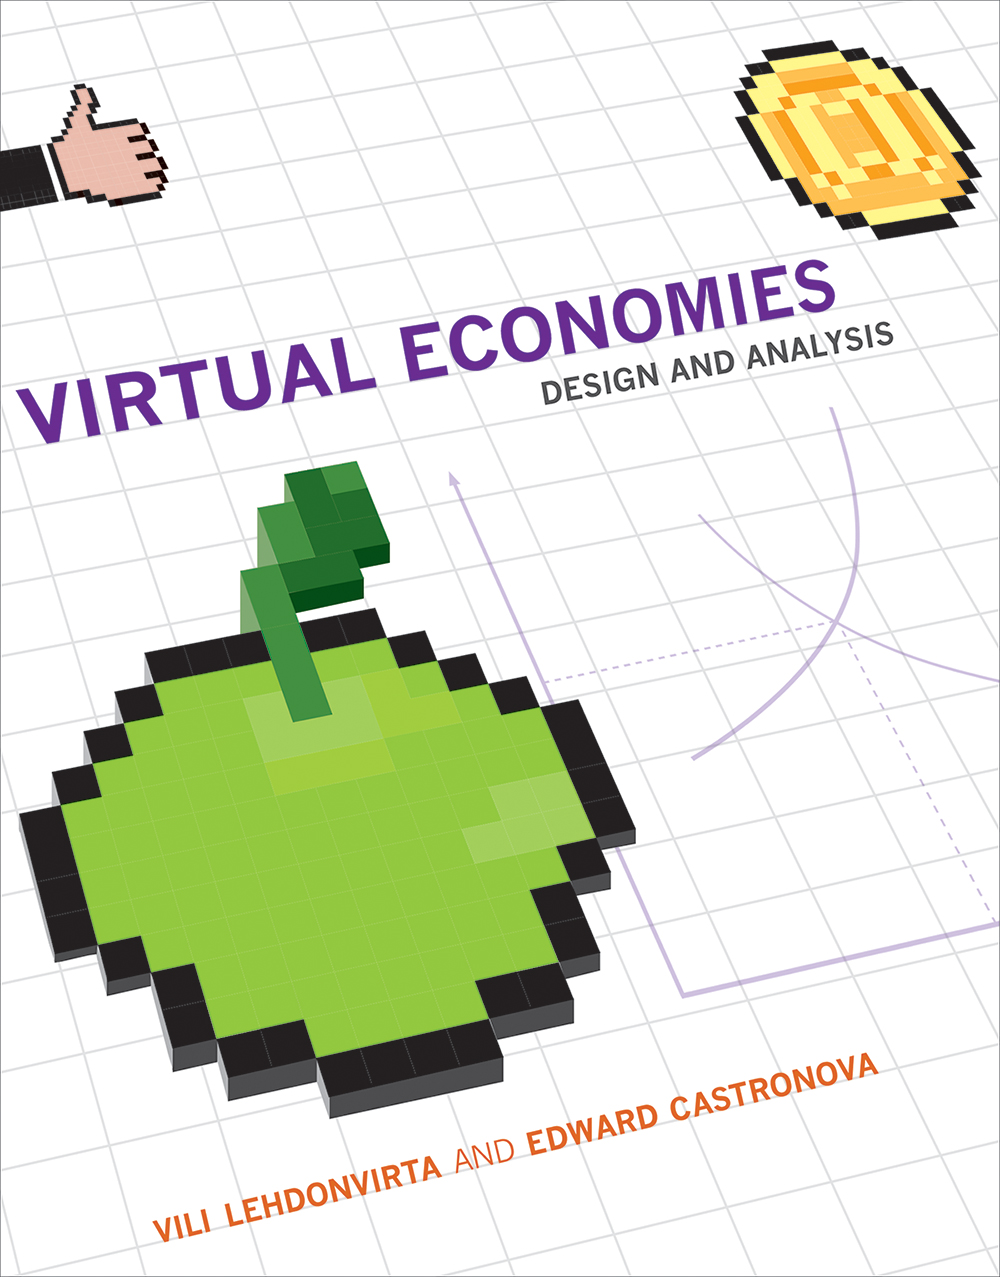 Cover graphic for Virtual Economies from MIT Press